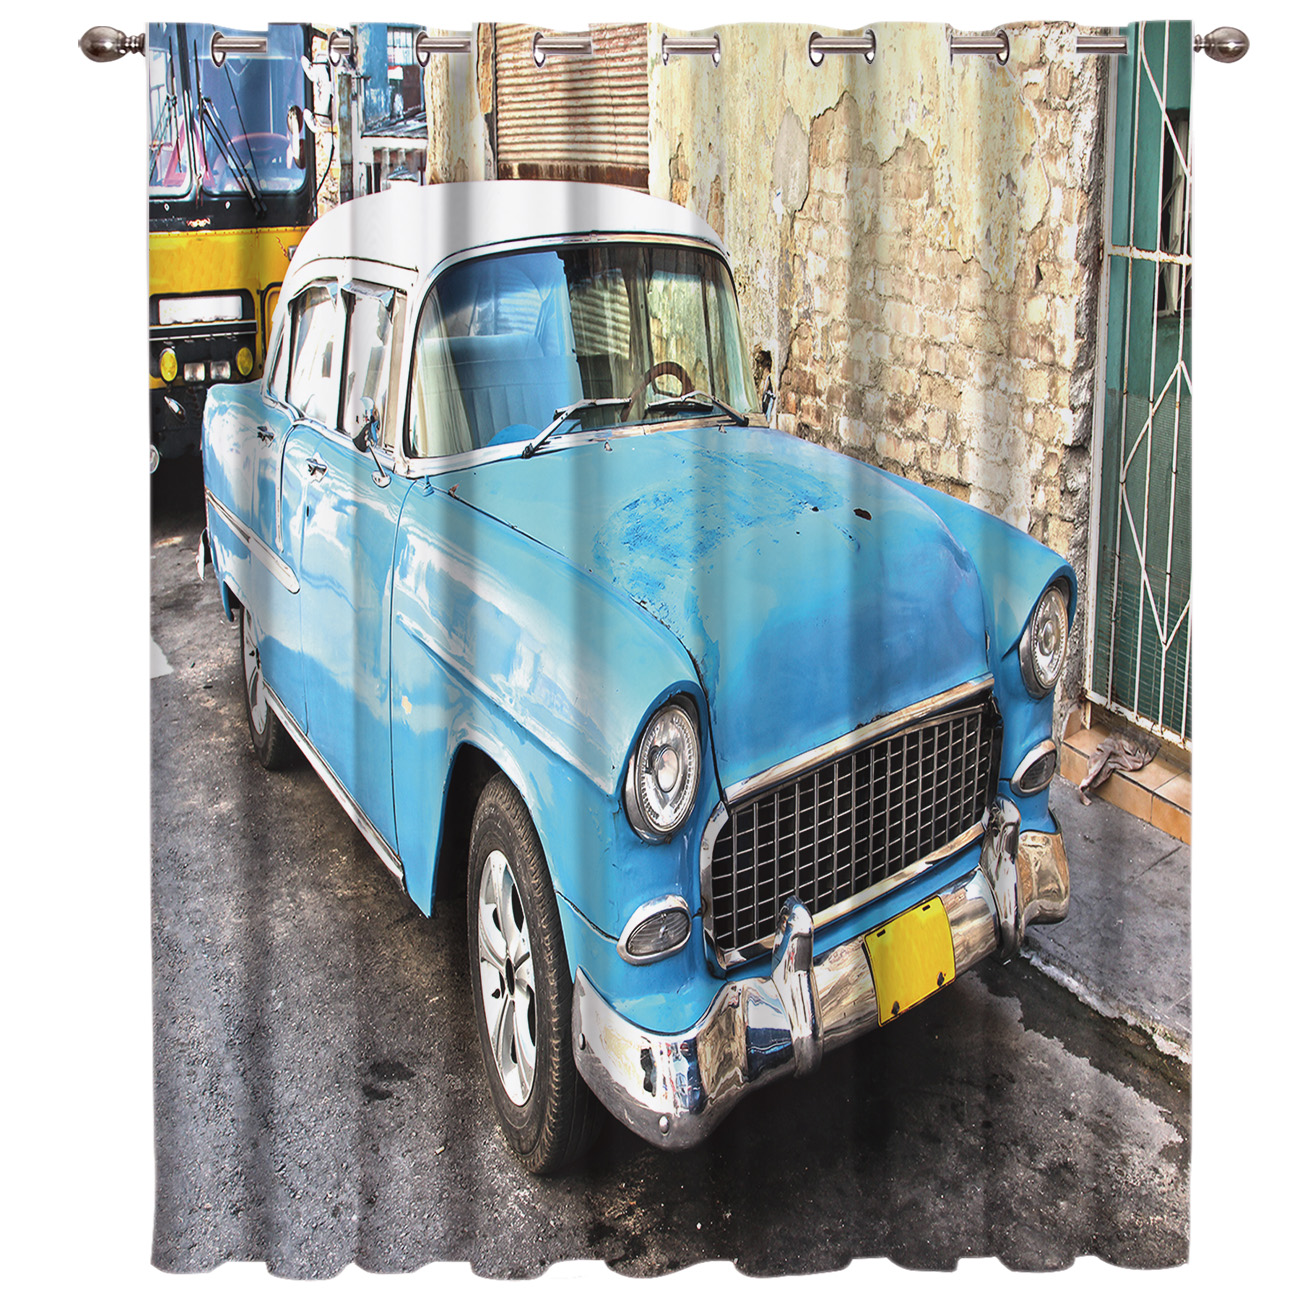 Retro Car Old Building Window Treatments Curtains Valance Room Curtains Large Window Curtain Lights Blackout Bedroom Kitchen